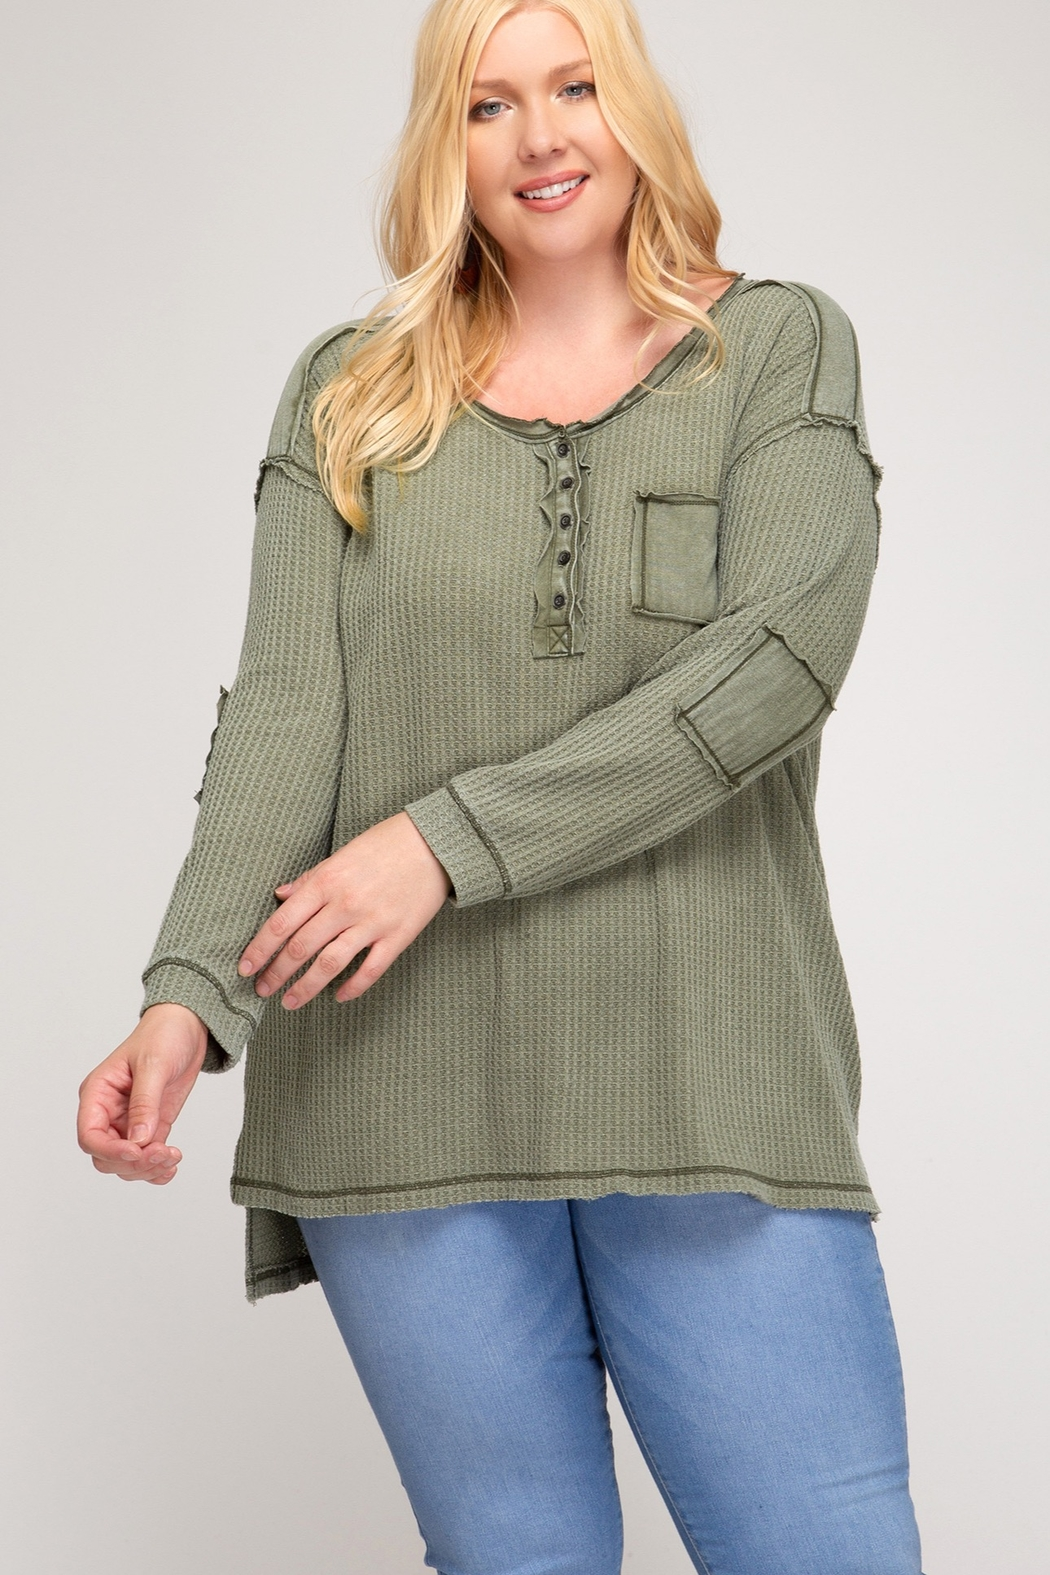 She + Sky Long Sleeve Button Down Thermal Top - Main Image